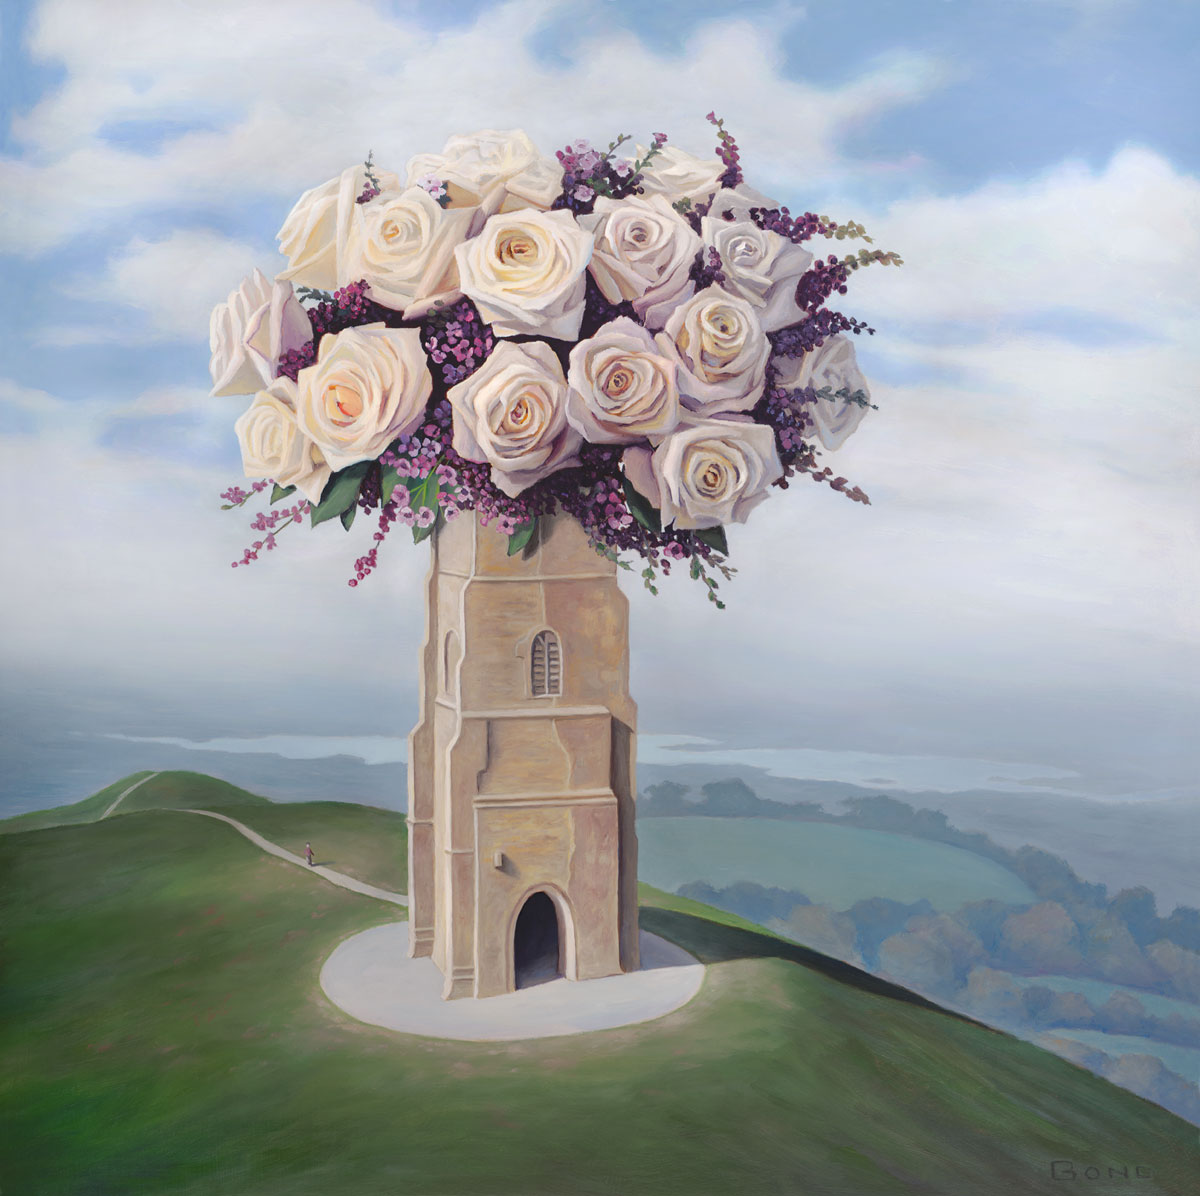 A Homecoming, art with roses, painting of the Glastonbury Tor, art with flowers, art with castle, painting of Tower of St Michael's in Glastonbury, England, painting of abby church ruins, art with man walking on path, portrait of landscape with clouds, male figure with hill and sky, painting meaning reincarnation, art meaning grace love and peace, art conveying travel, painting with idealism, soulful uplifting inspirational art, soul stirring illusion art, romantic art,  surrealism, surreal art, dreamlike imagery, fanciful art, fantasy art, dreamscape visual, metaphysical art, spiritual painting, metaphysical painting, spiritual art, whimsical art, whimsy art, dream art, fantastic realism art, magic realism oil painting by Paul Bond